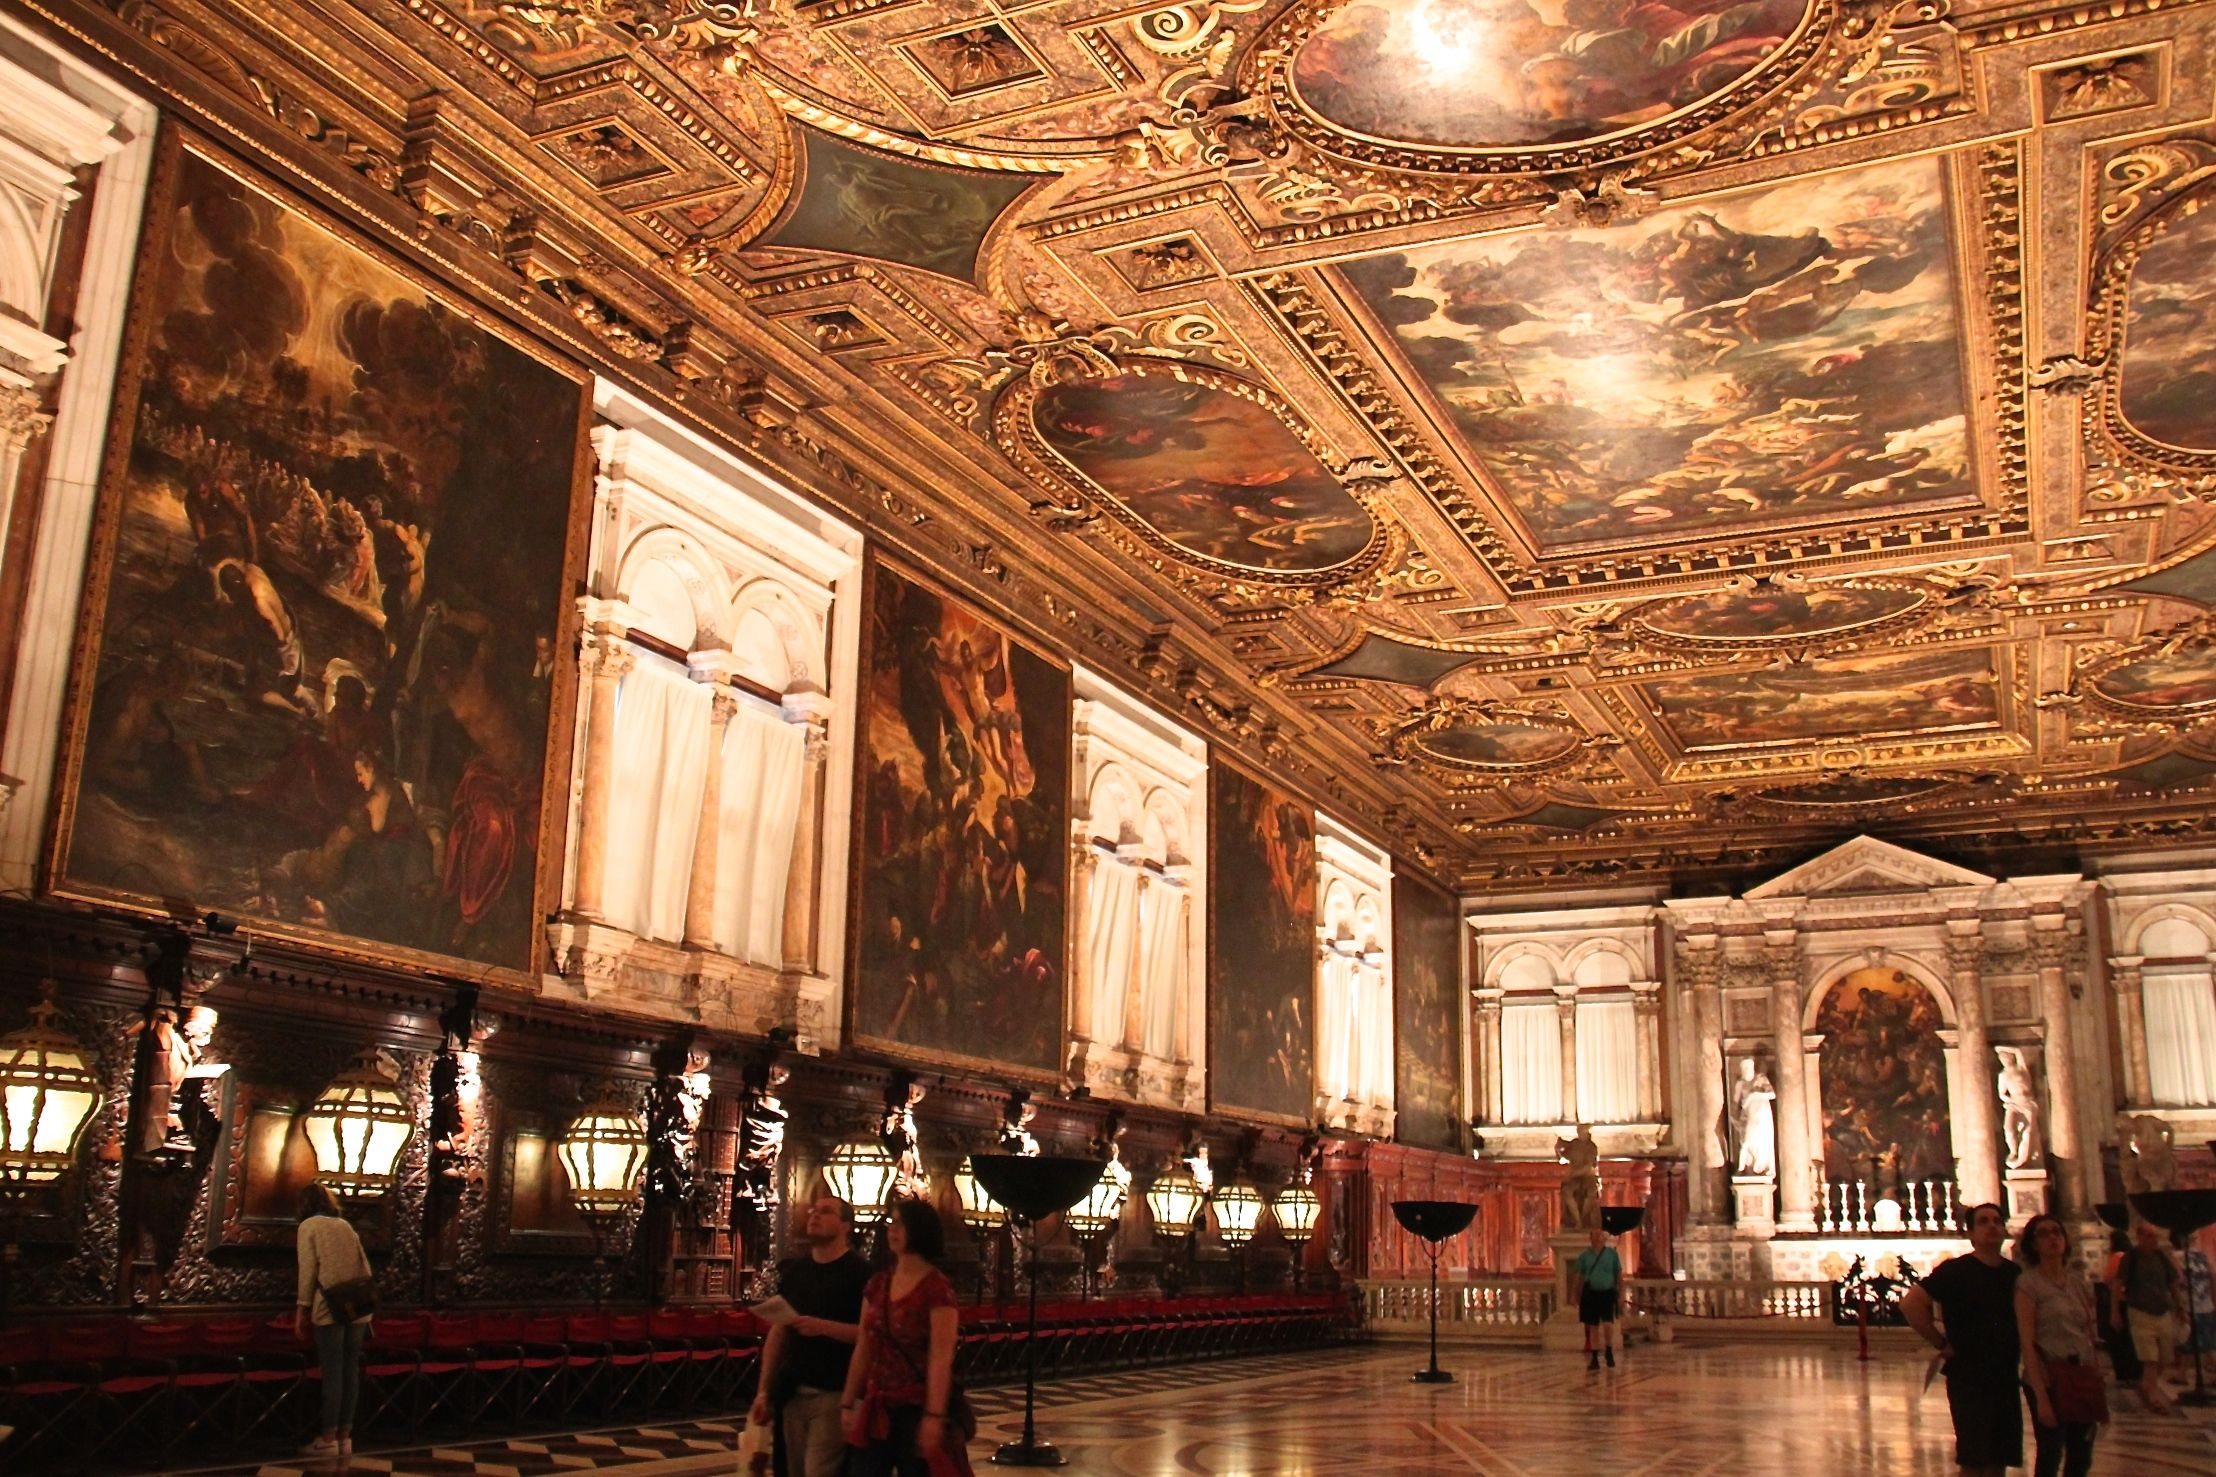 Tintoretto dedicated himself to painting the Scuola Grande di San Rocco - the result is stunning as you can see!